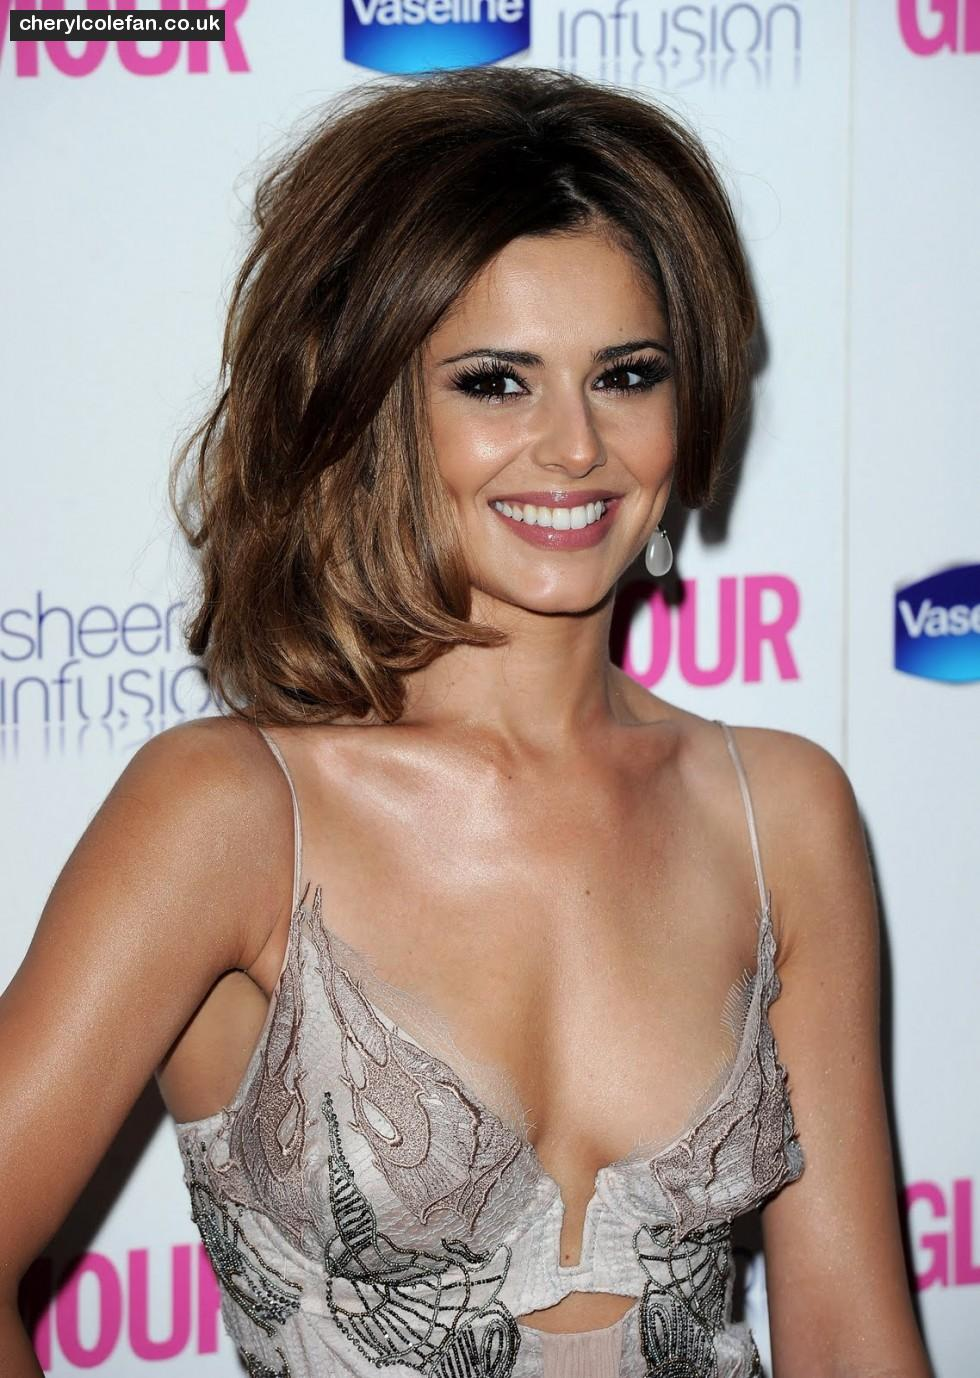 980_celebrity-paradise-com-max-cherylcole-london-lo-1567044075